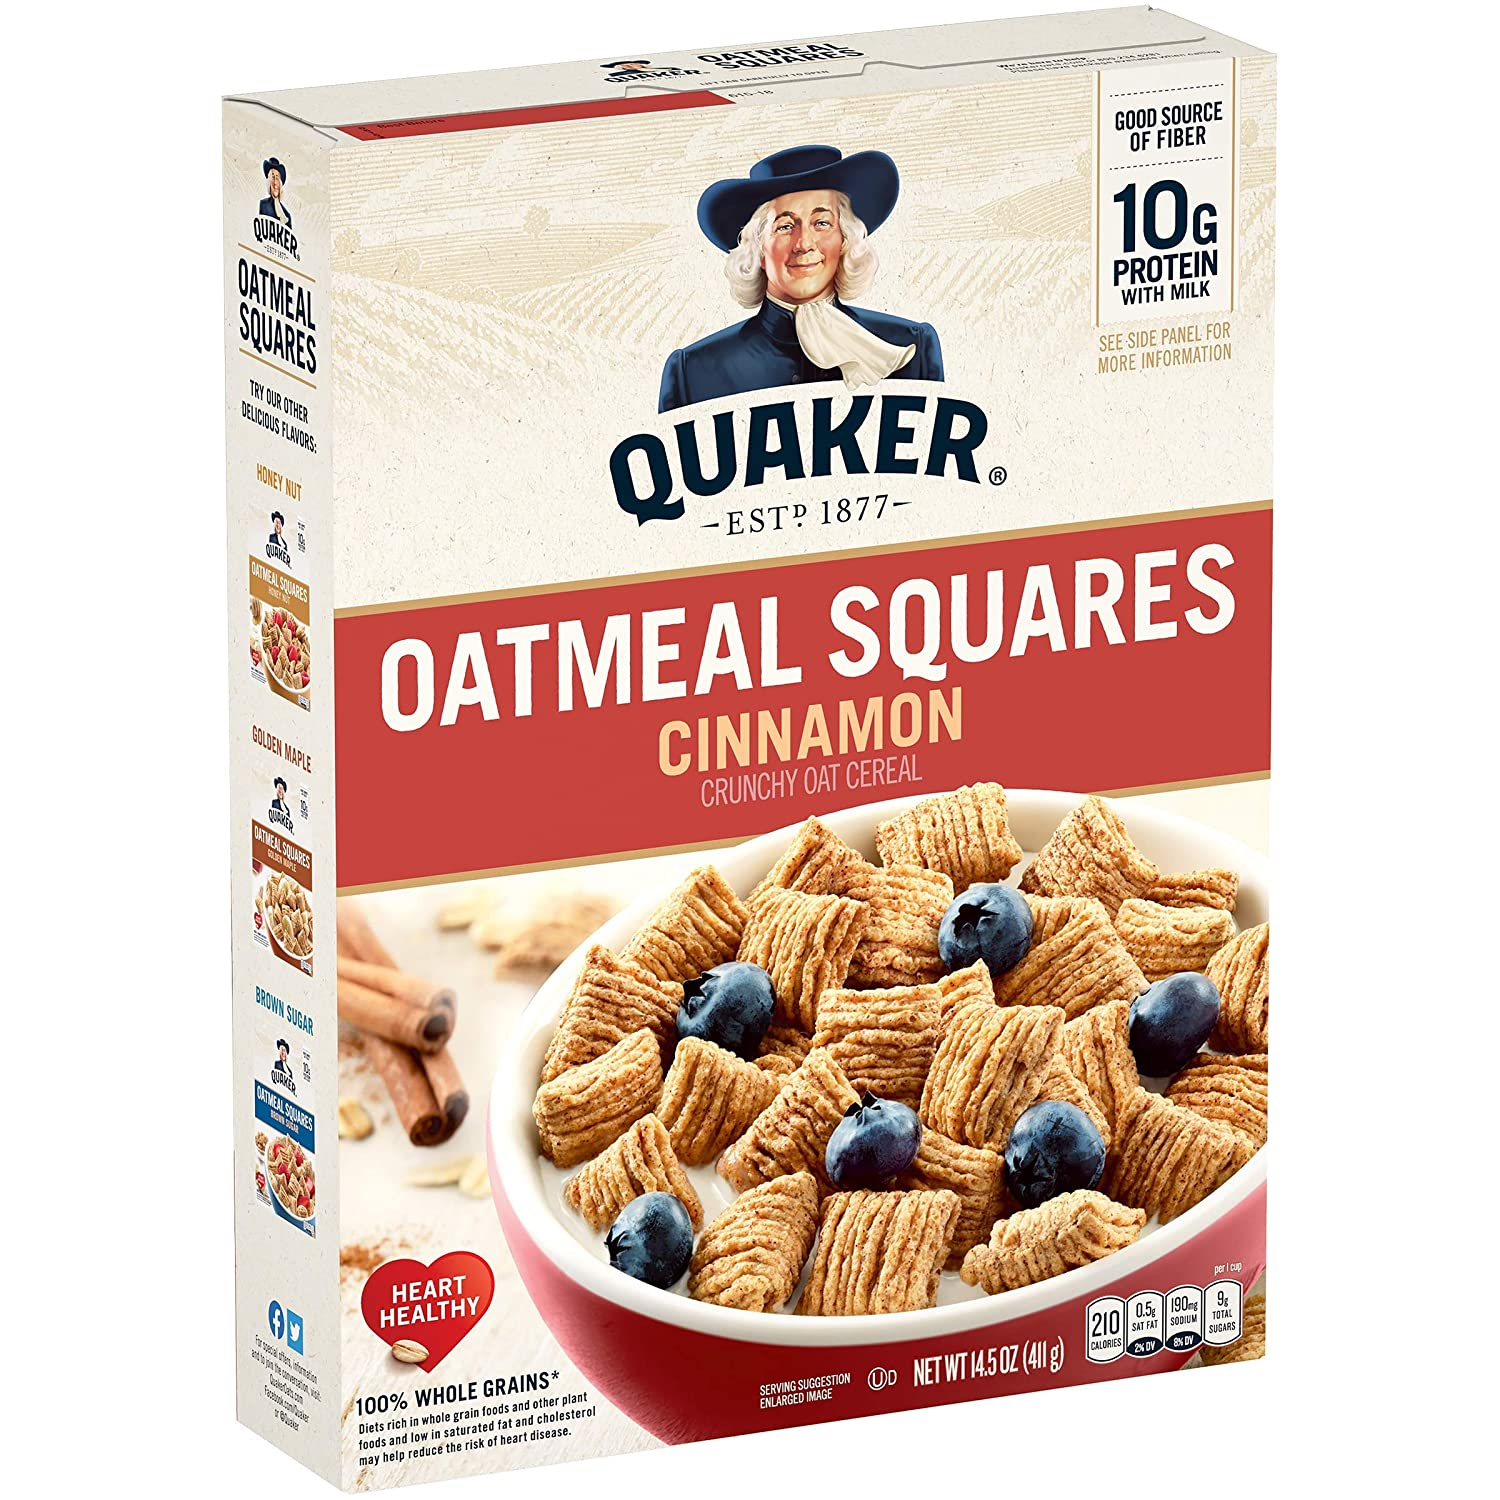 Quaker Oatmeal Breakfast Cereal Max 61% OFF Outlet sale feature Cinnamon Oz 14.5